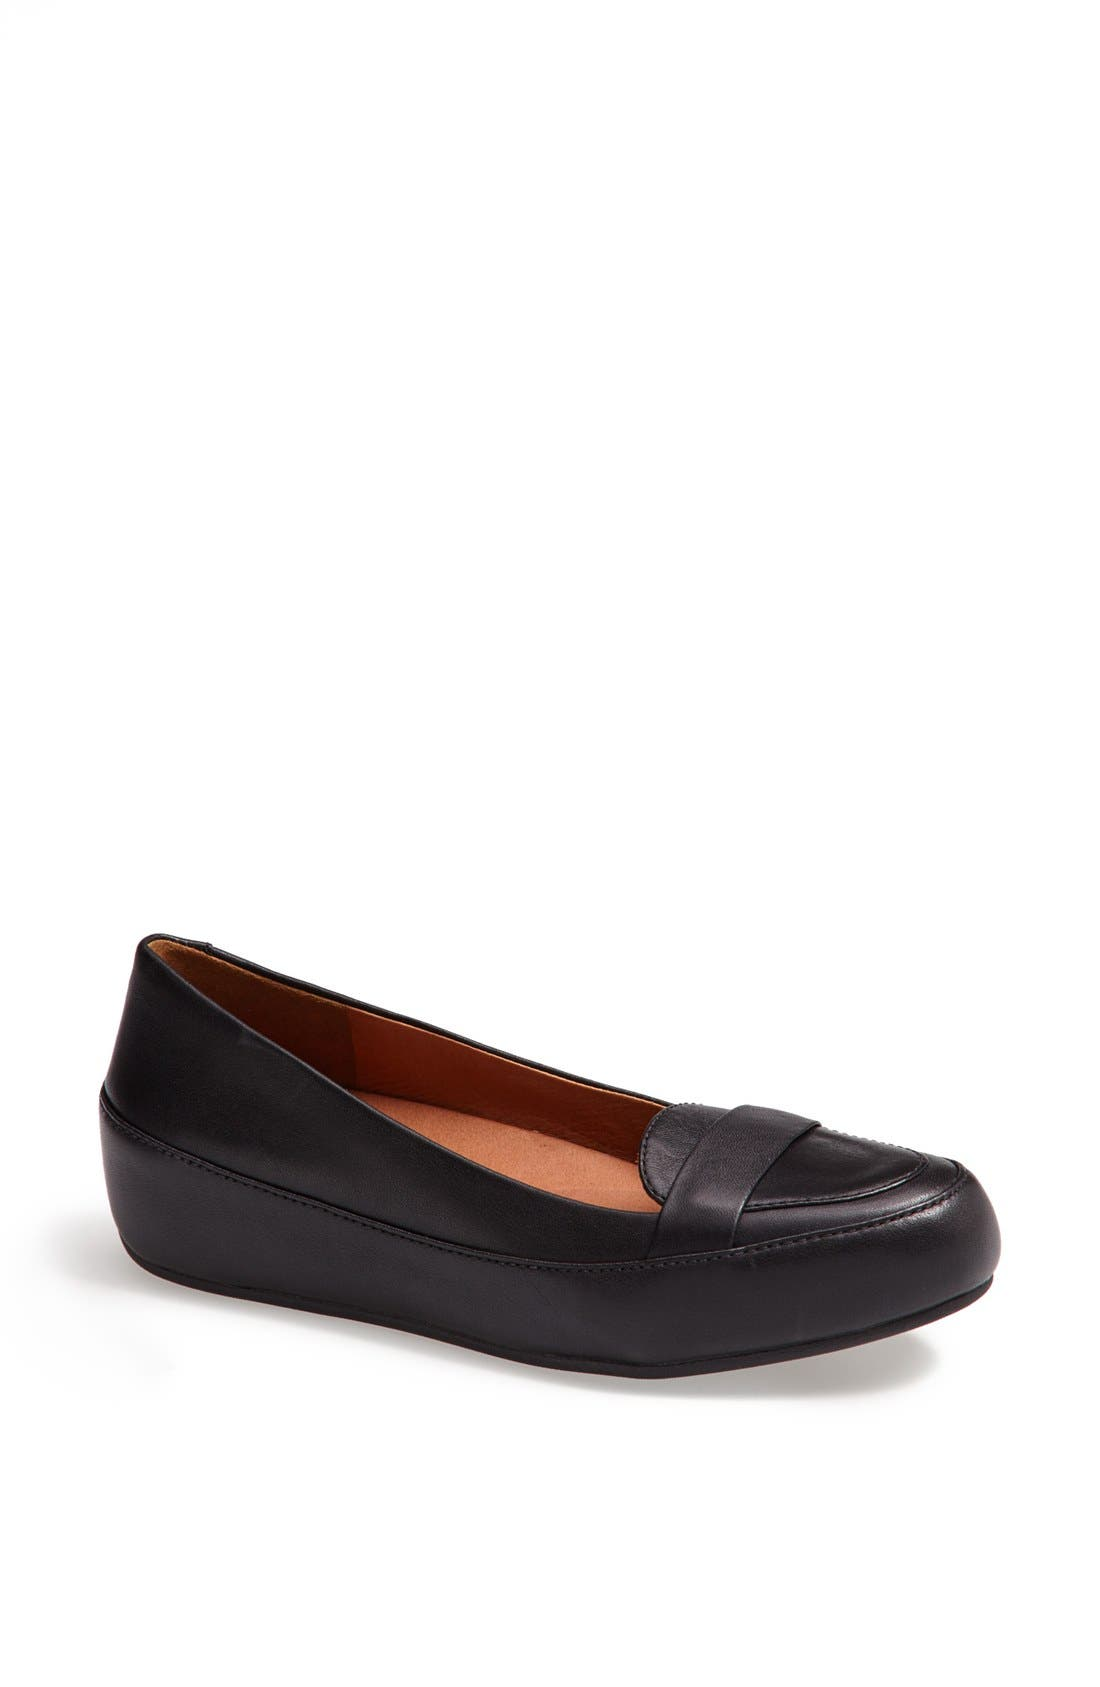 Alternate Image 1 Selected - FitFlop 'Dué™ Pop' Leather Loafer